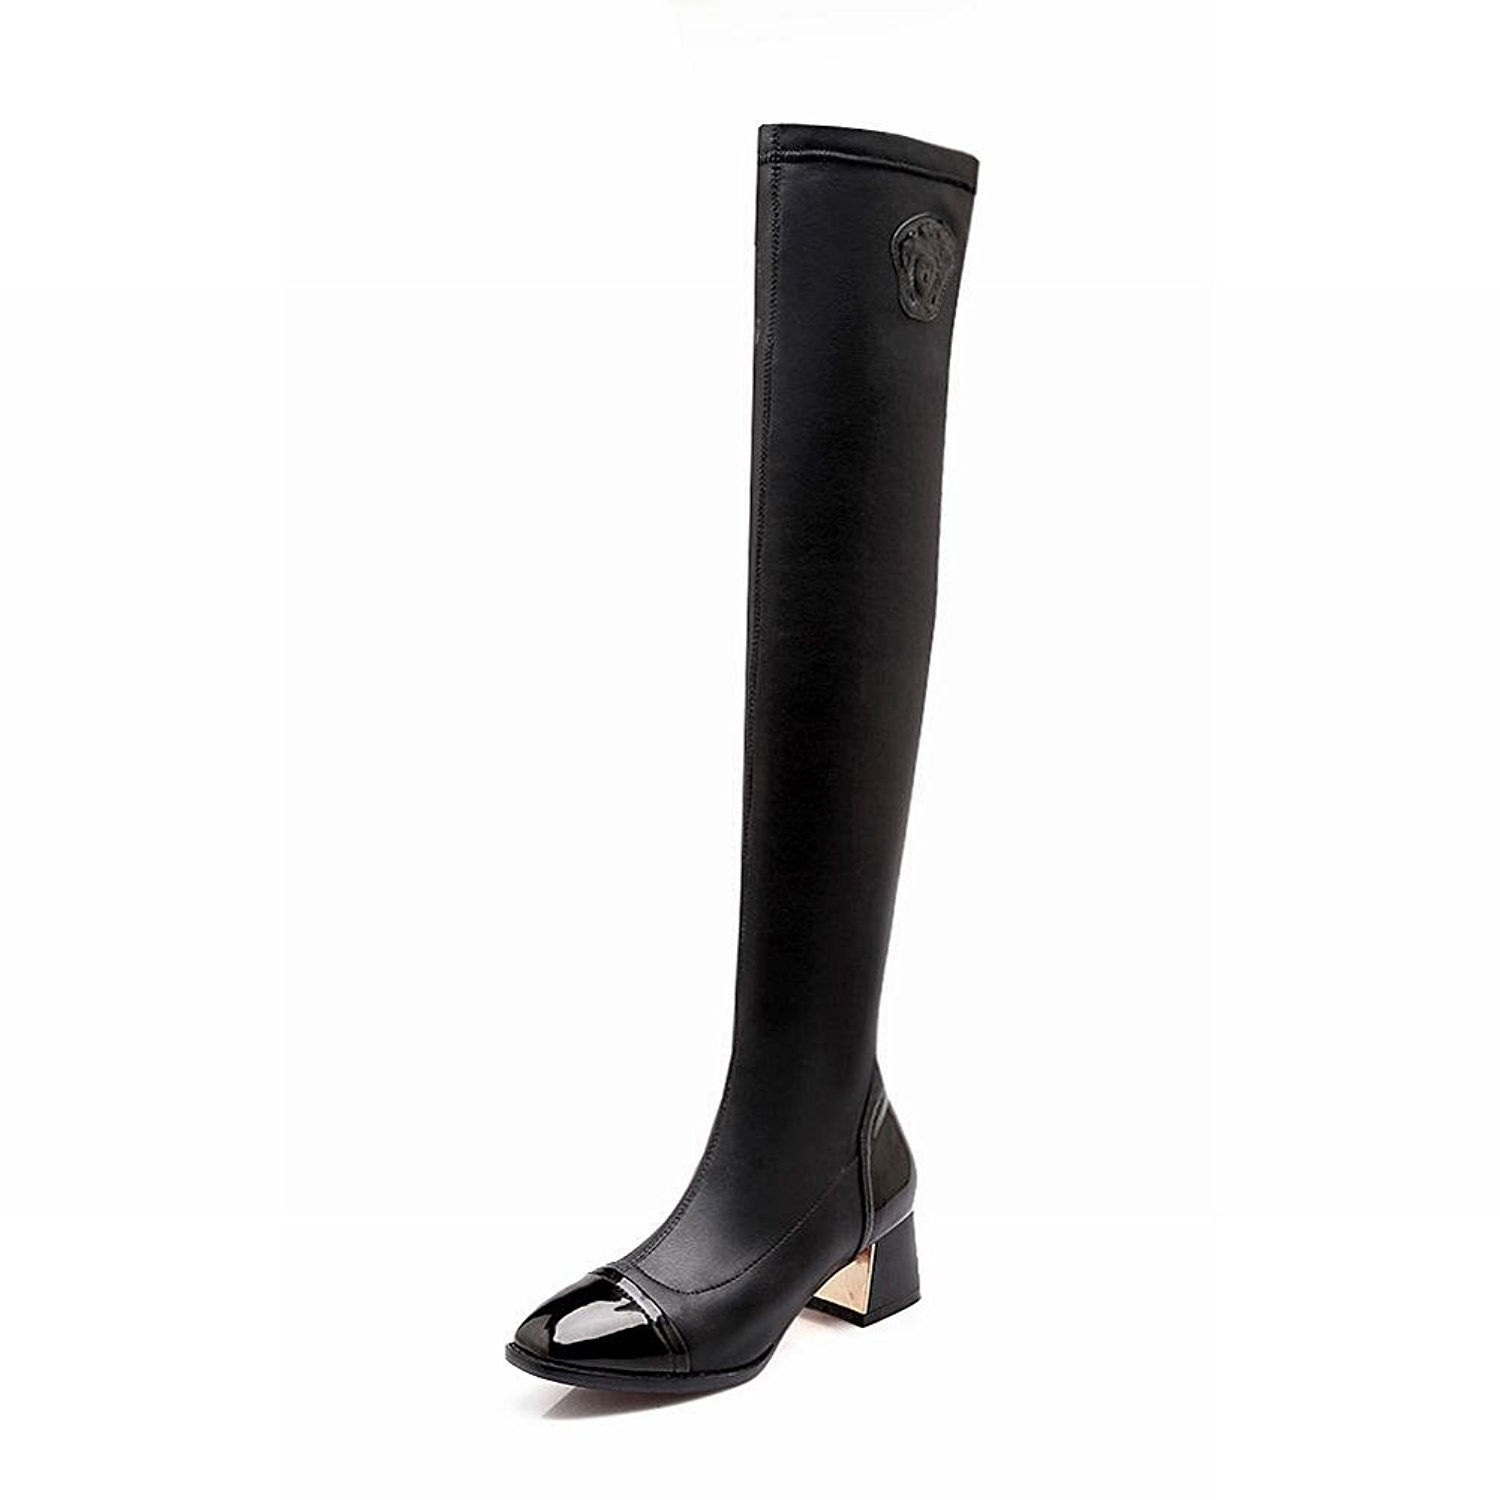 6eceda382ed3a Get Quotations · Latasa Women's Fashion Elastic Slim Chunky Mid-heel Tall  Riding Boots, Casual Boots